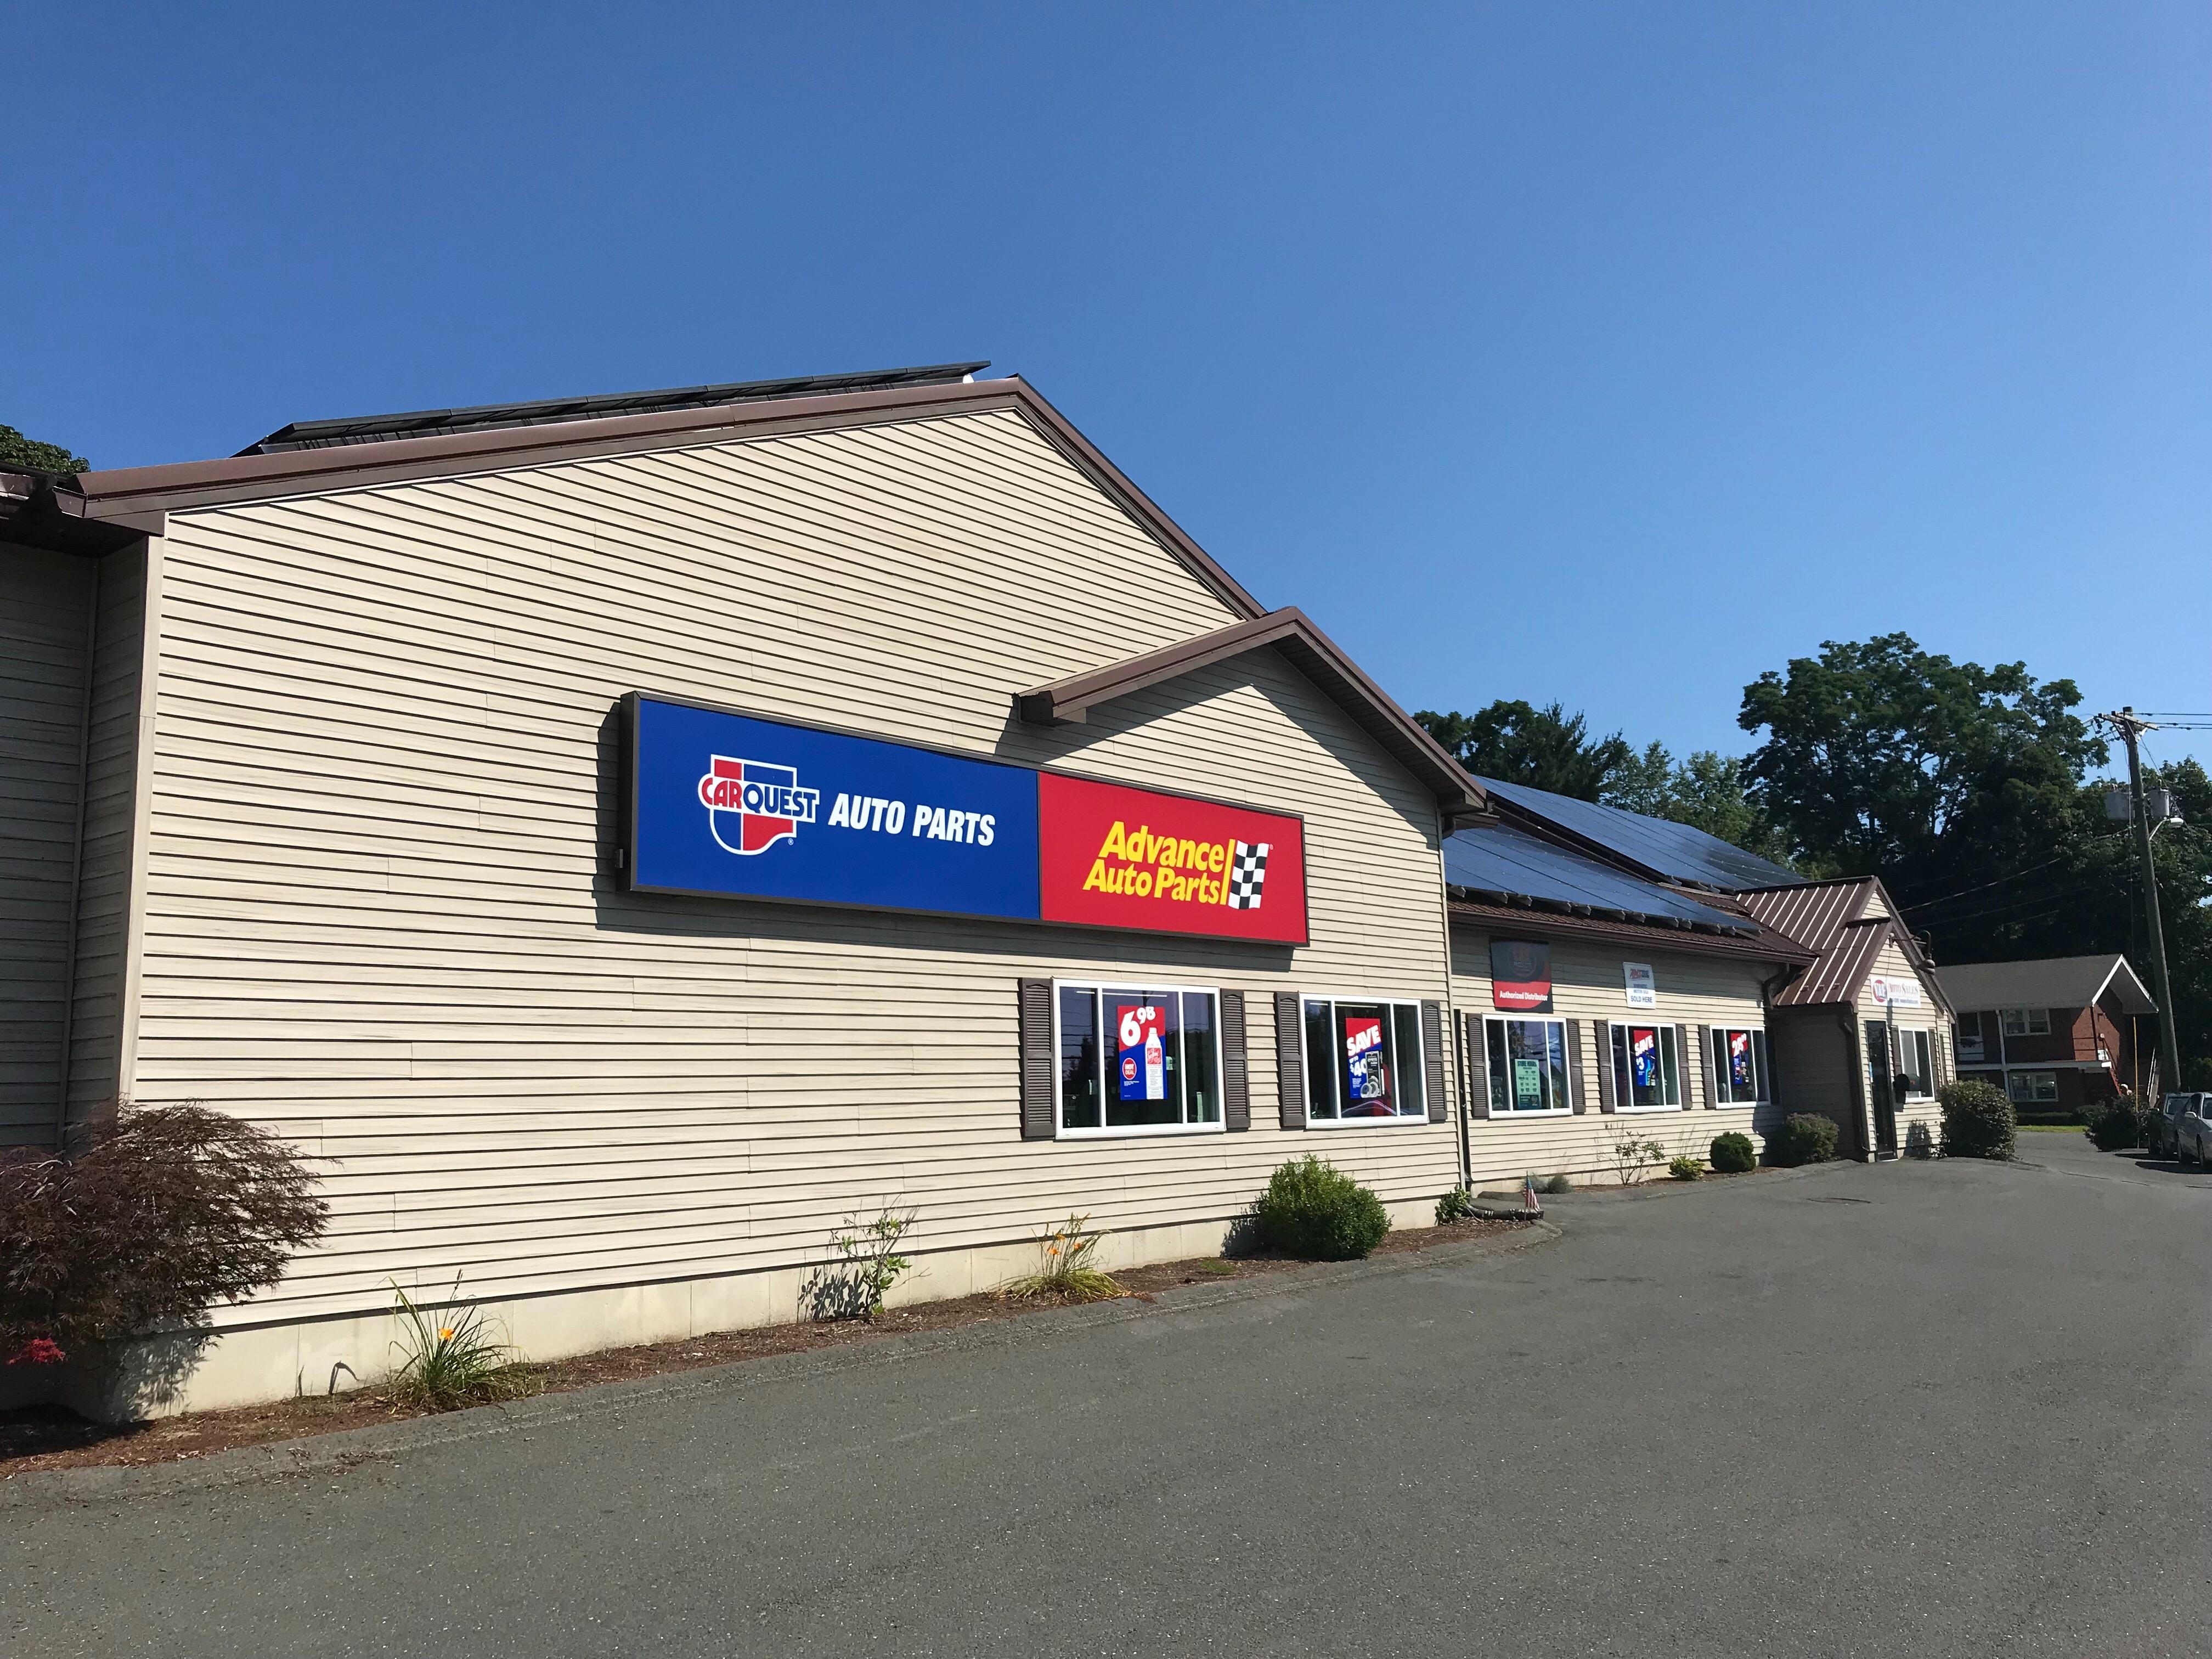 Carquest Auto Parts Near Me >> Carquest Auto Parts Carquest Of Agawam 7 Harding St Agawam